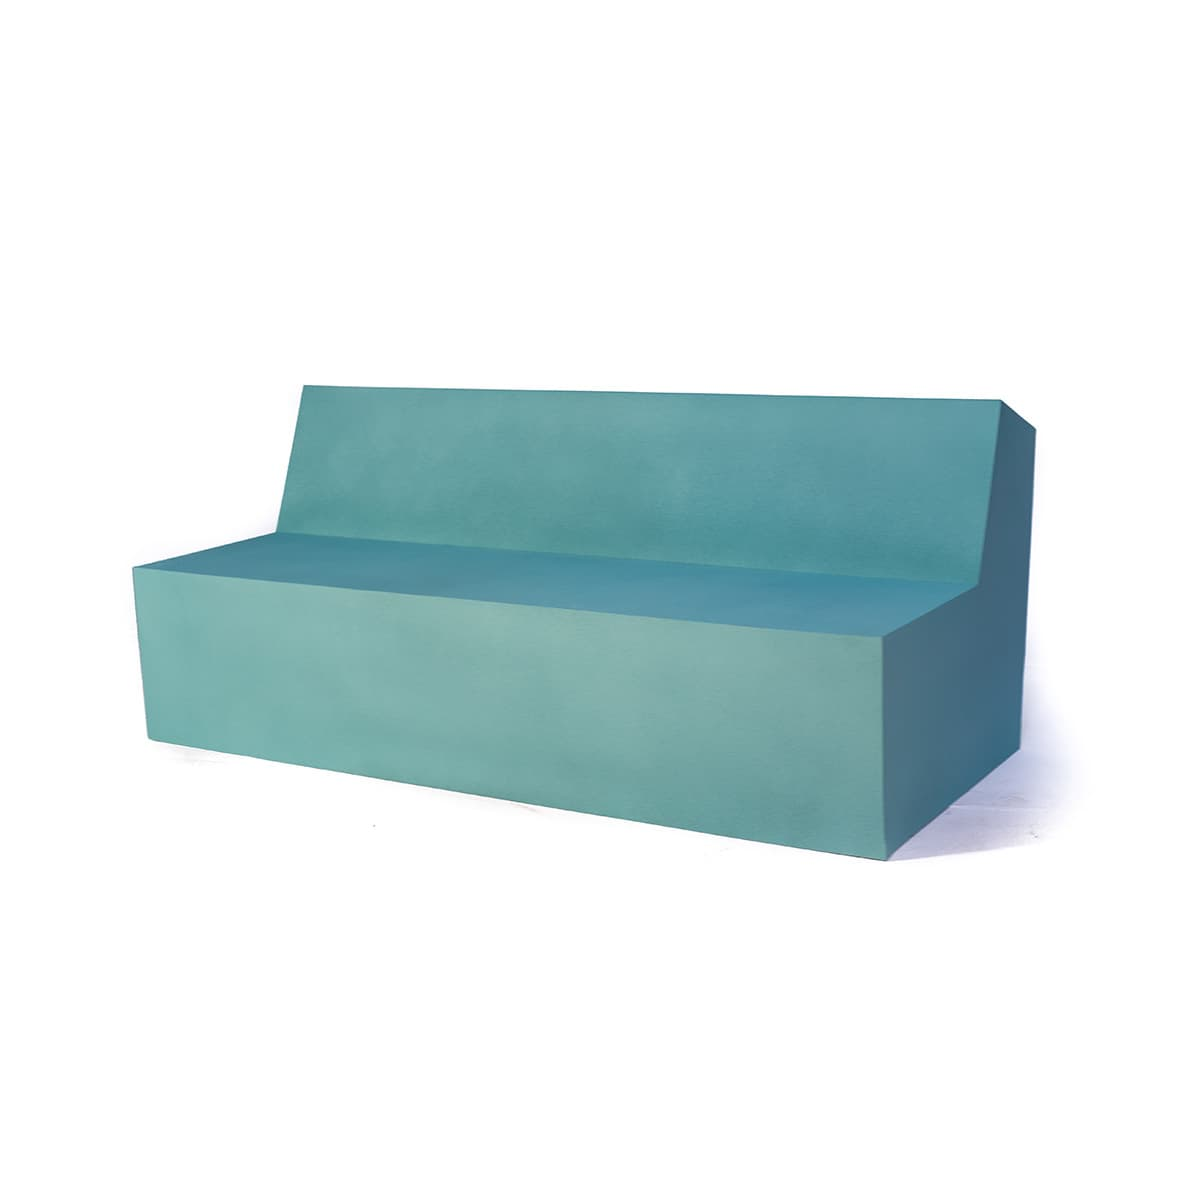 _0001_Block_Slab-bench_isolated